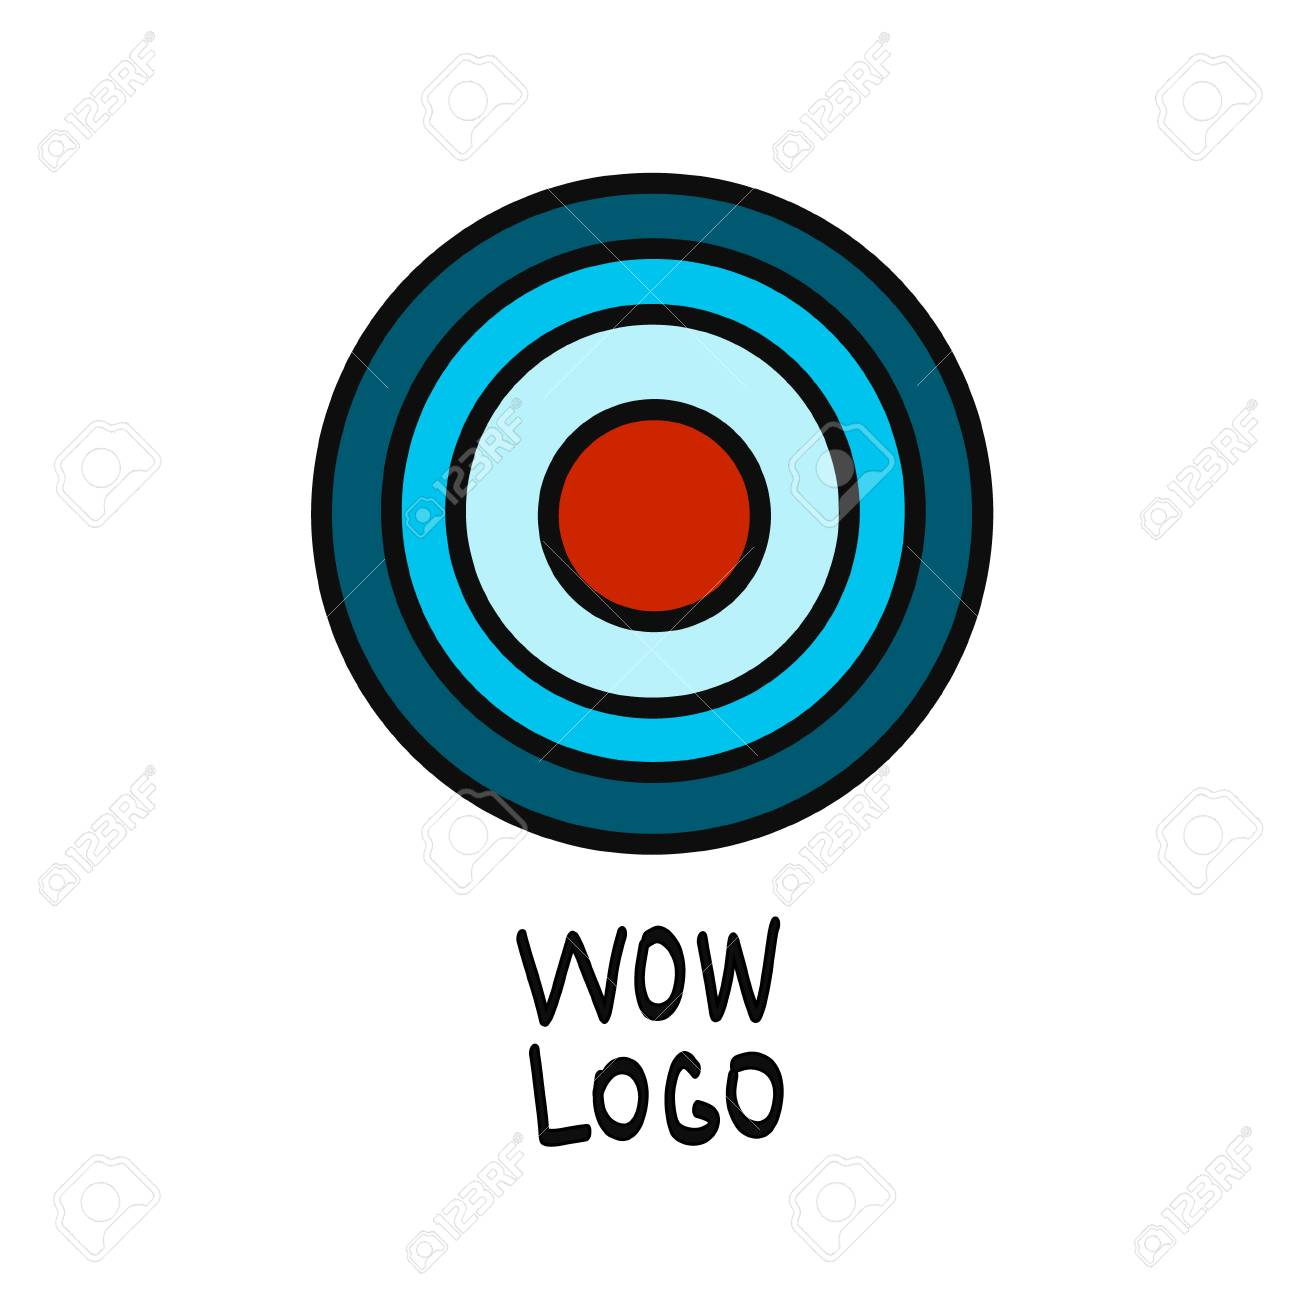 red aim idea concept perfect hit winner target goal icon royalty free cliparts vectors and stock illustration image 115594644 red aim idea concept perfect hit winner target goal icon